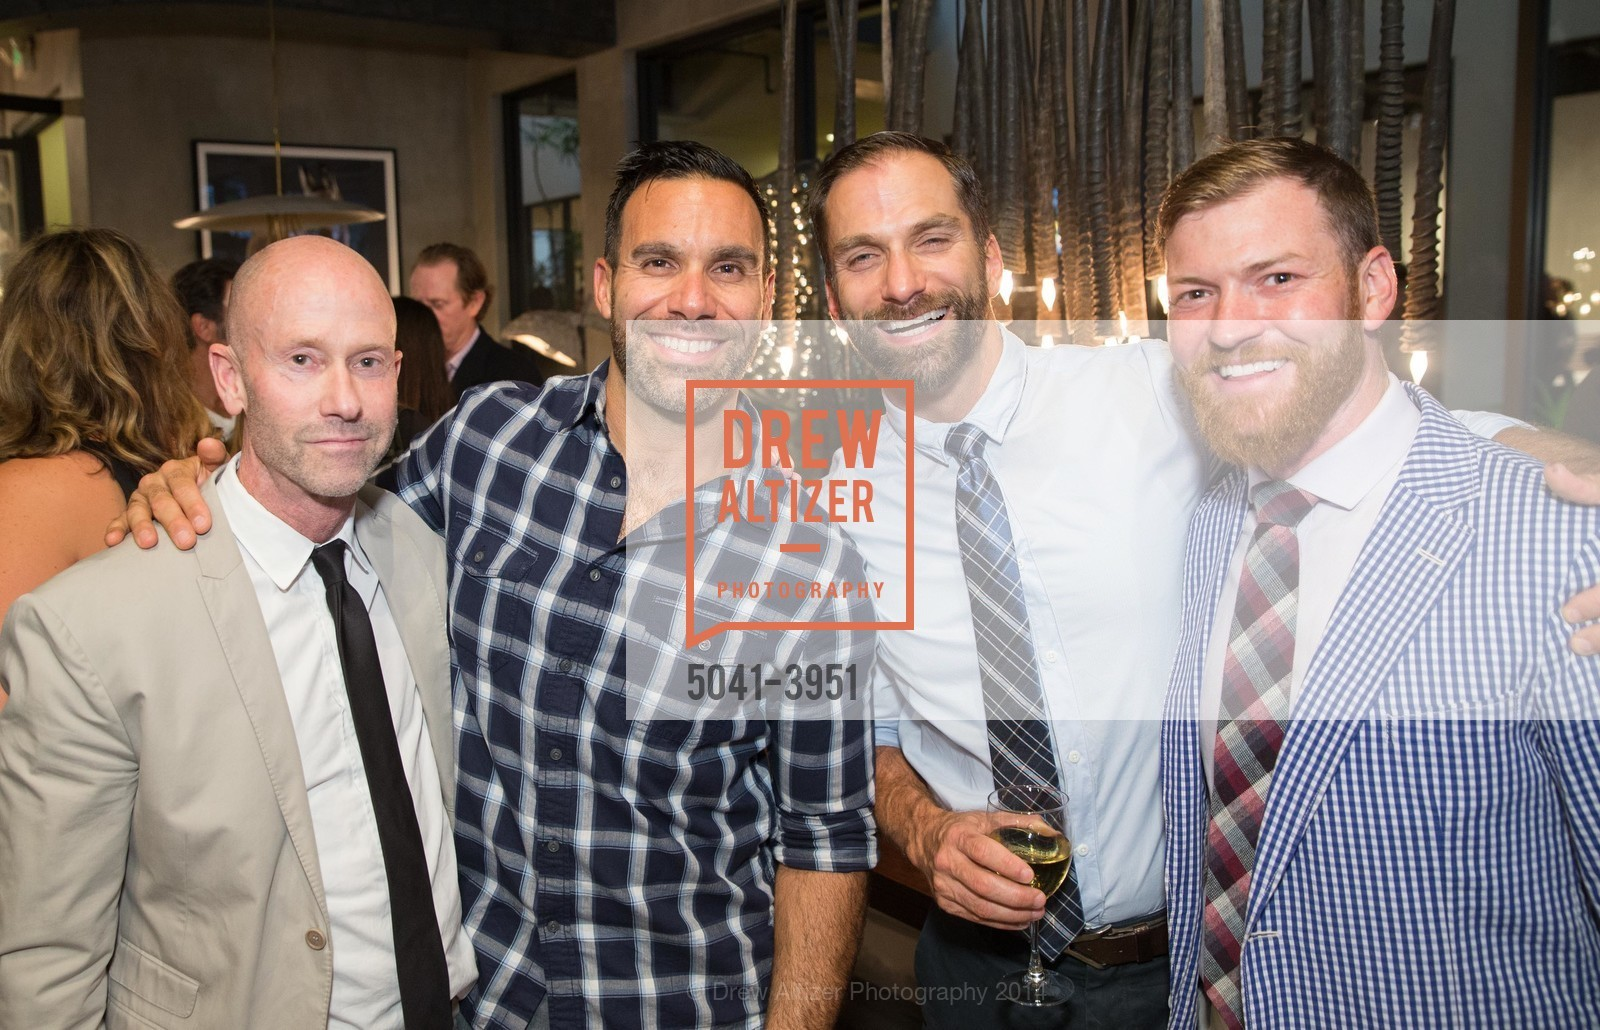 Michael Berg, Michael Clausen, Billy Polson, Ryan Richard, Photo #5041-3951